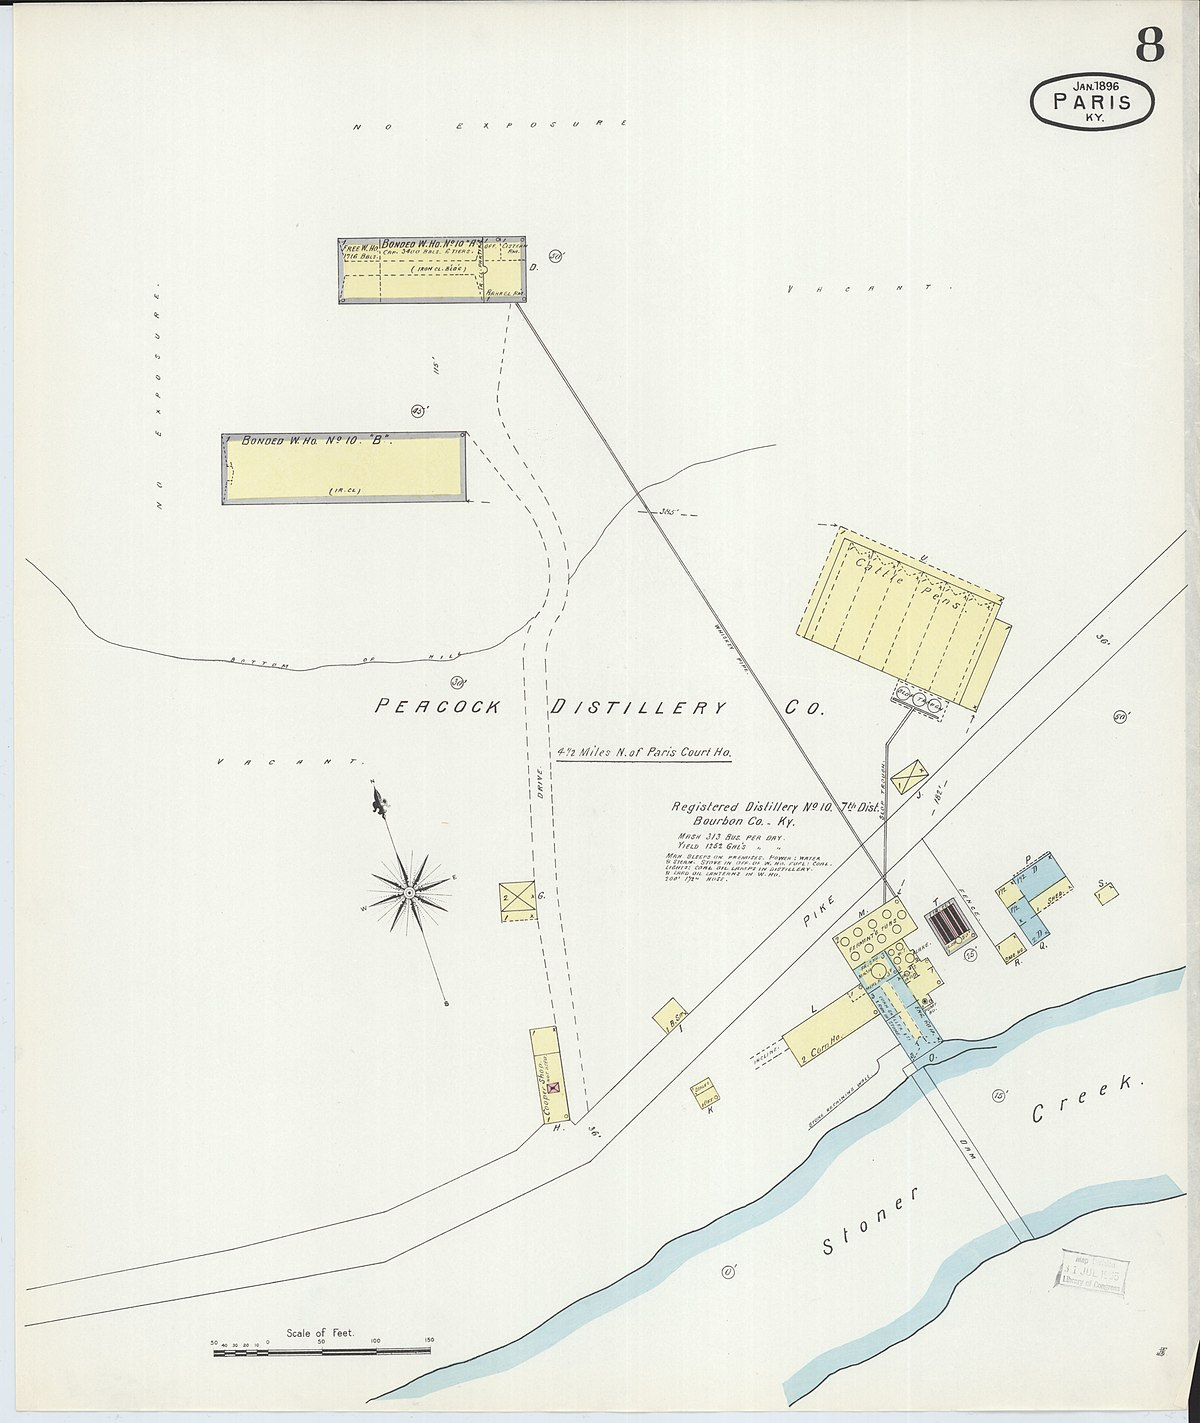 Picture of: File Sanborn Fire Insurance Map From Paris Bourbon County Kentucky Loc Sanborn03227 003 8 Jpg Wikimedia Commons